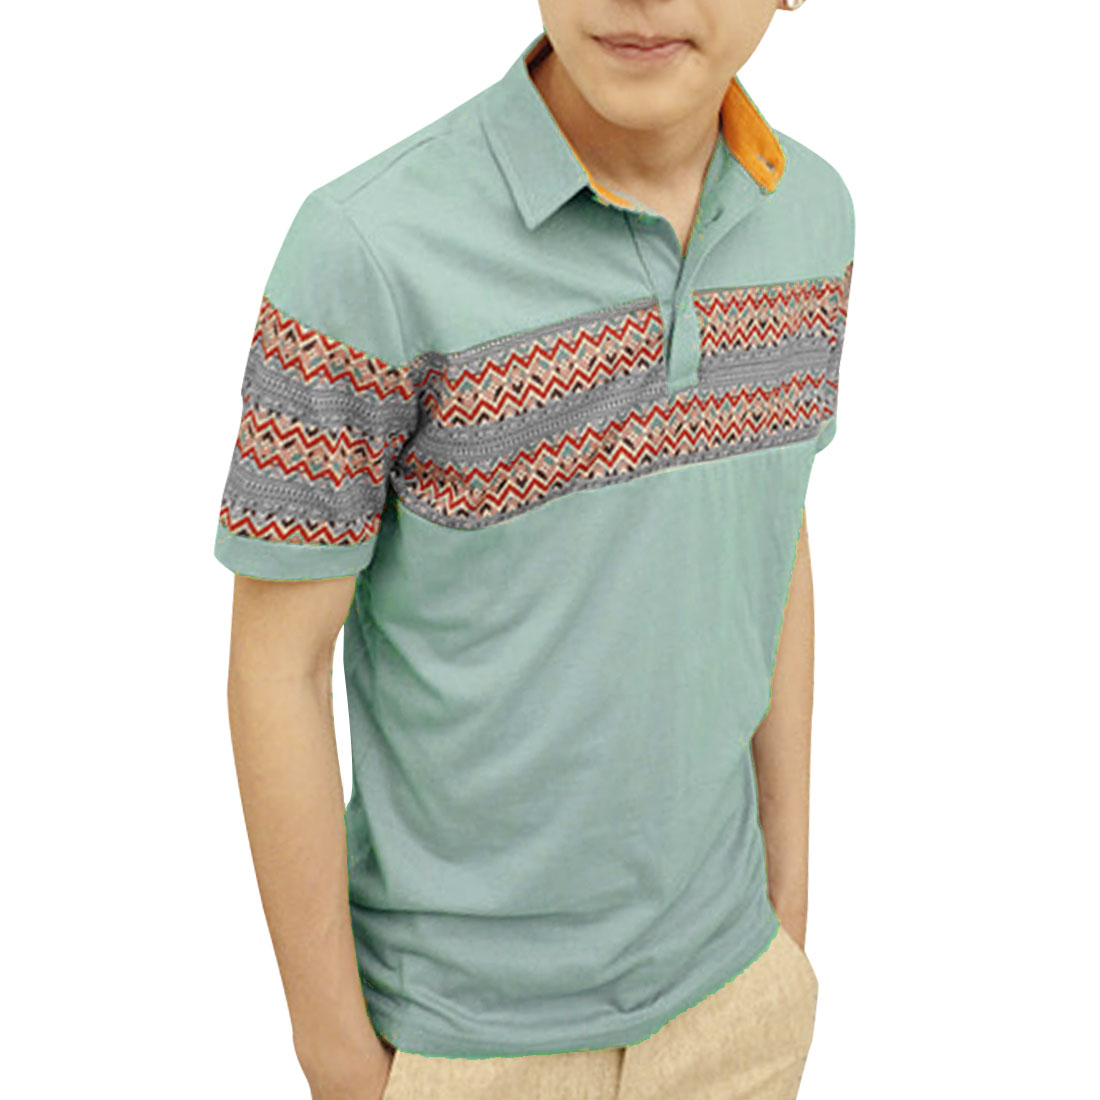 Button Closure Zigzag Pattern Stylish Polo Shirt Top Pale Blue S for Men